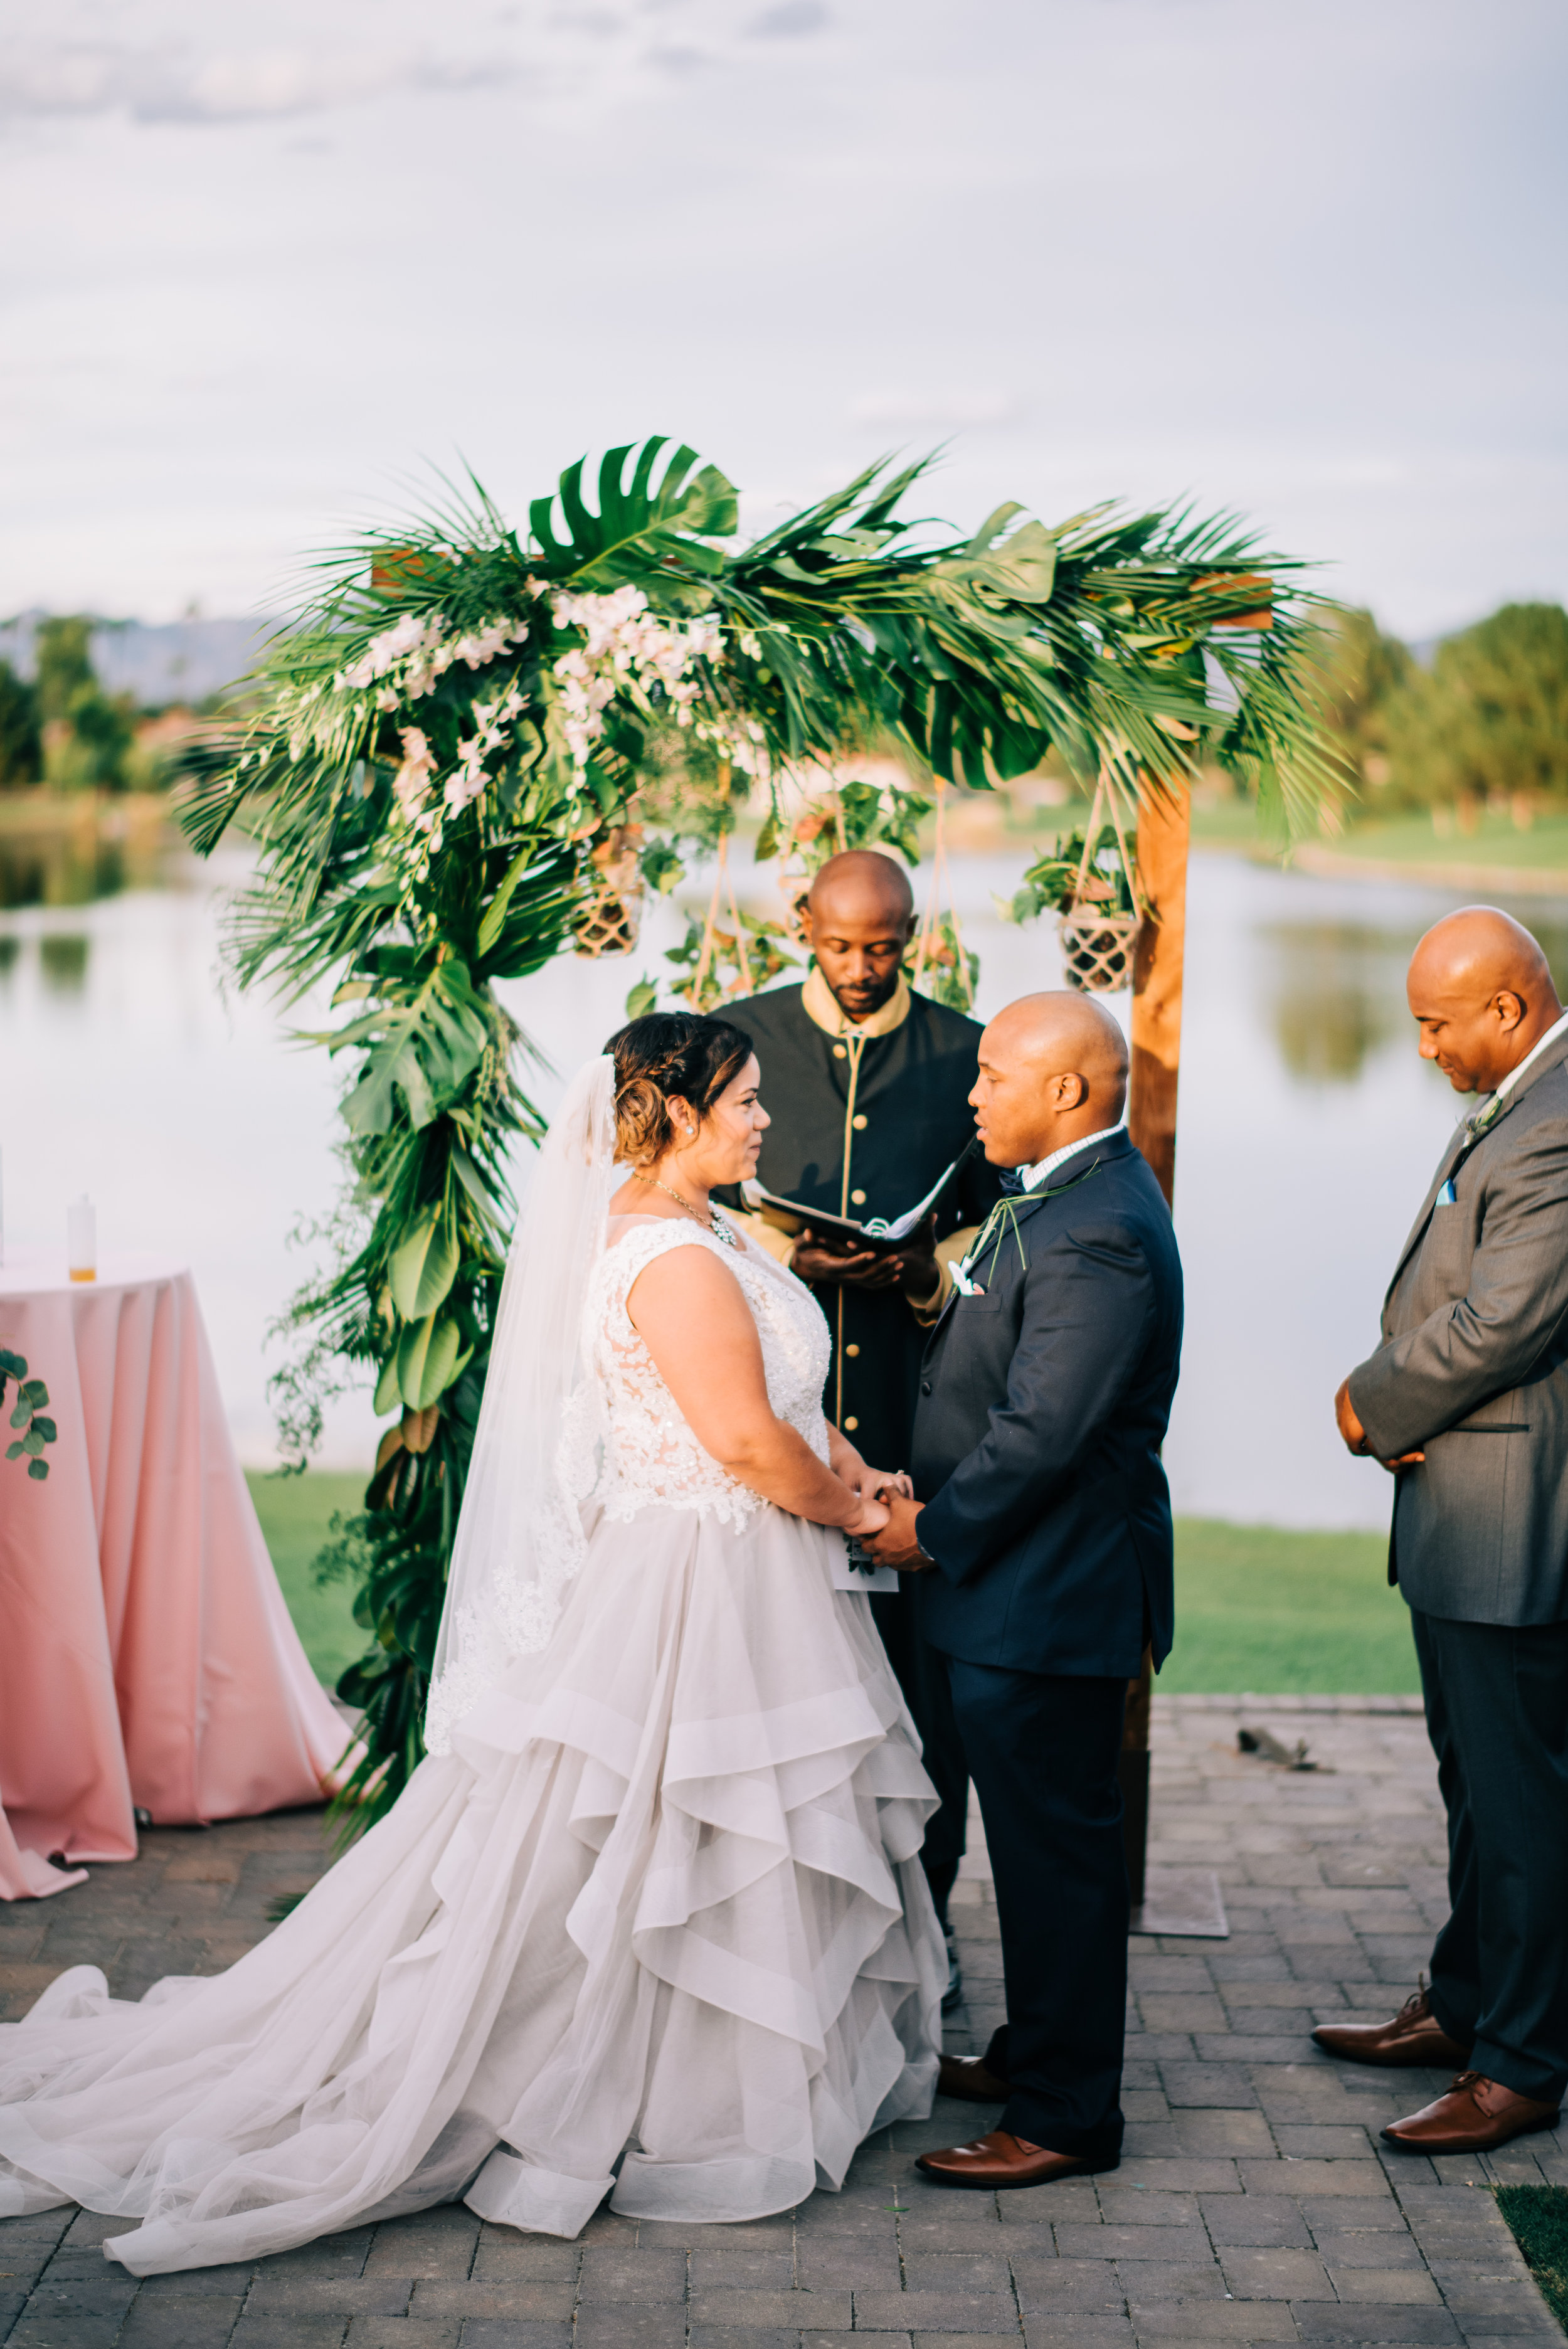 21 wedding vows bride groom exchange vows write own vows wedding ceremony lake wedding outdoor wedding tropical theme wedding Life Design Events photos by Josh Snyder Photography .jpg